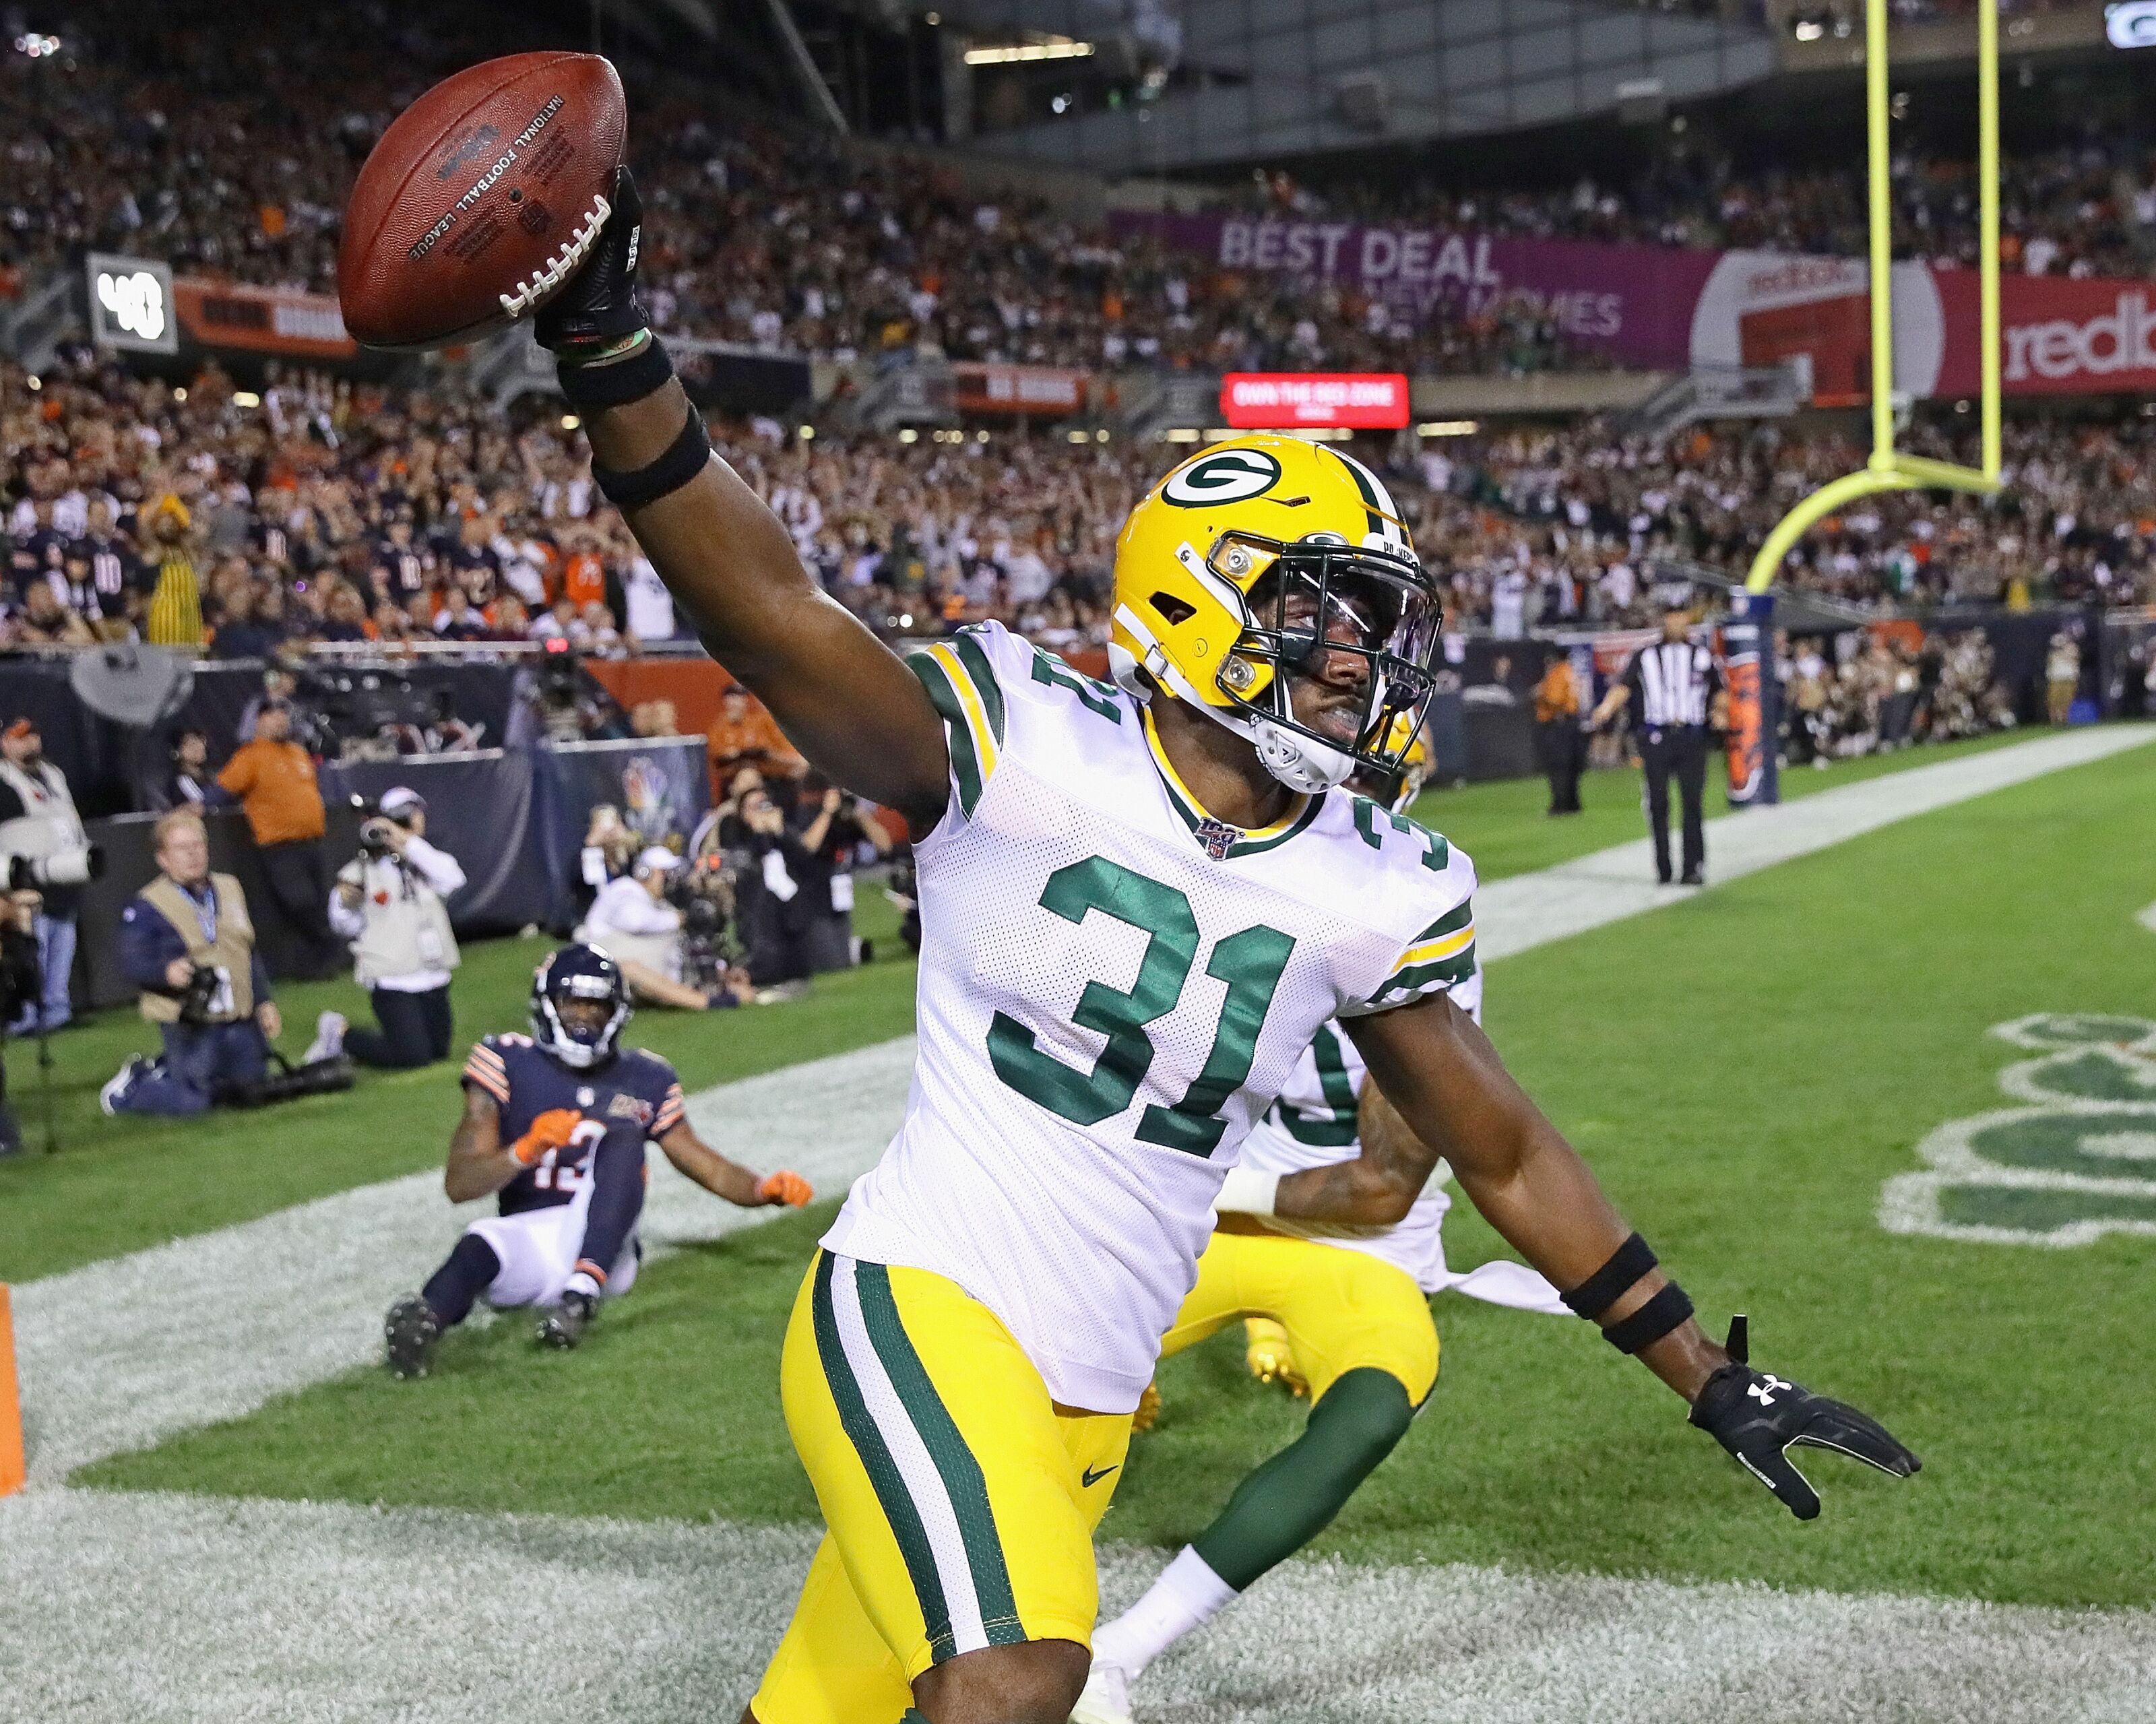 Green Bay Packers offseason additions dominate week 1